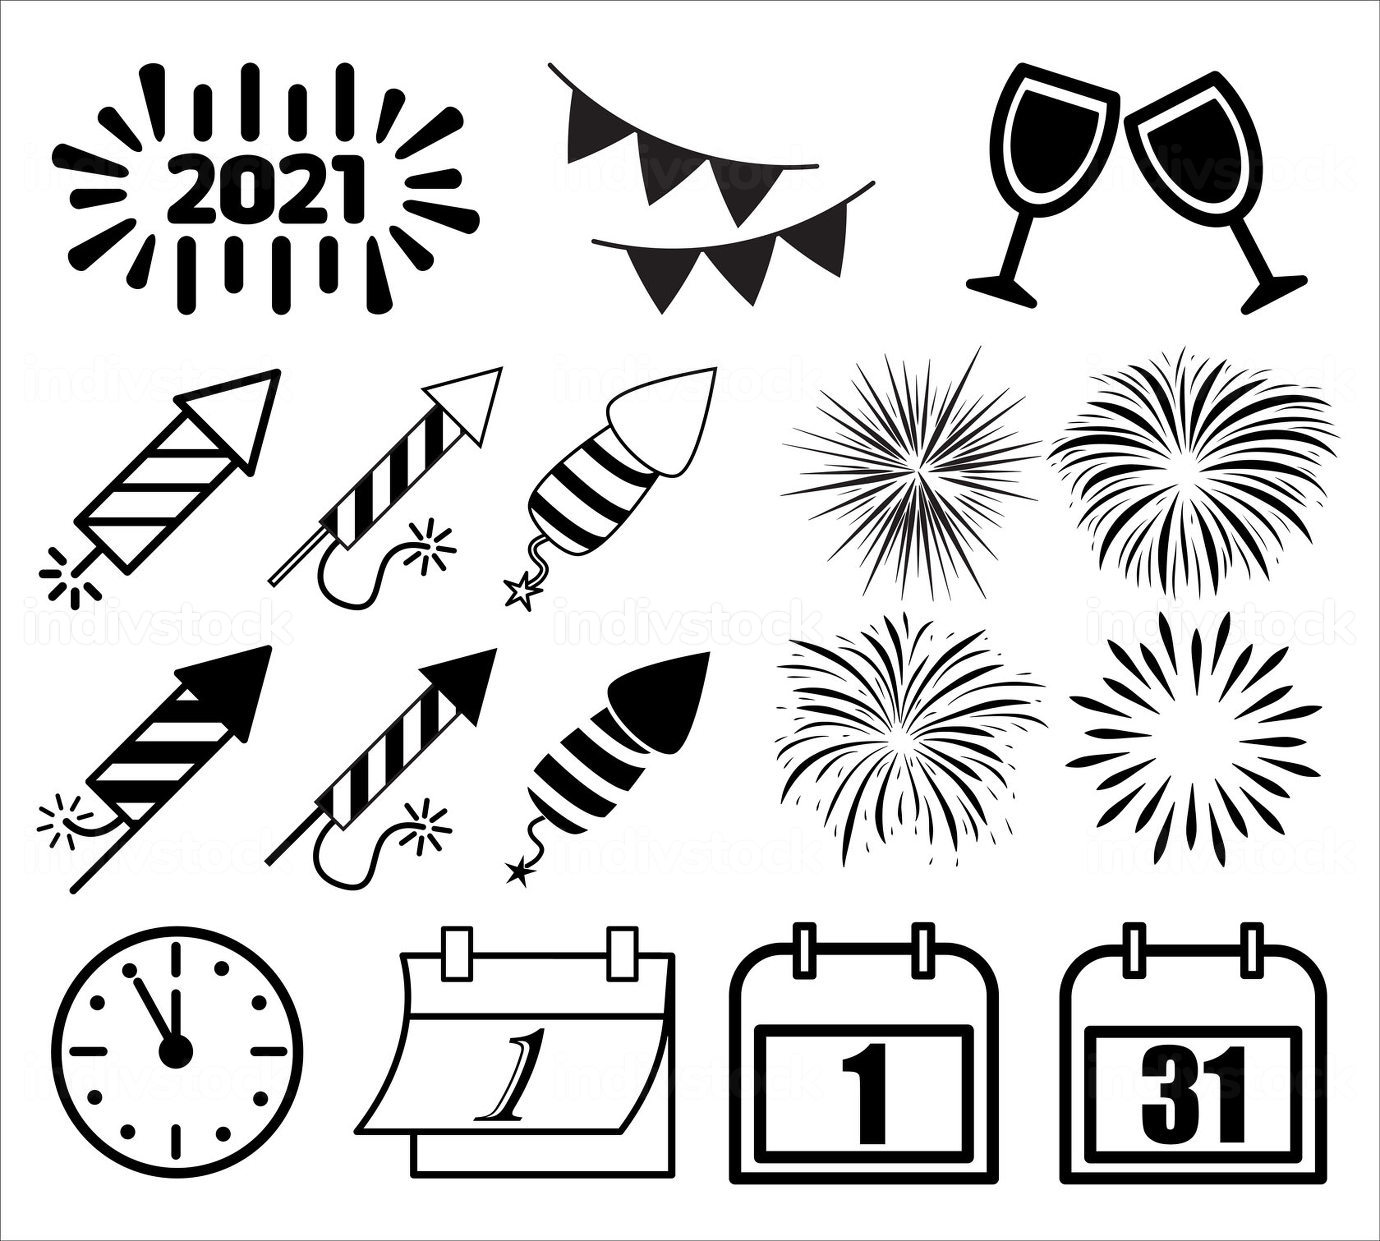 New year icon symbol set. Silhouette and outline shapes. Vector